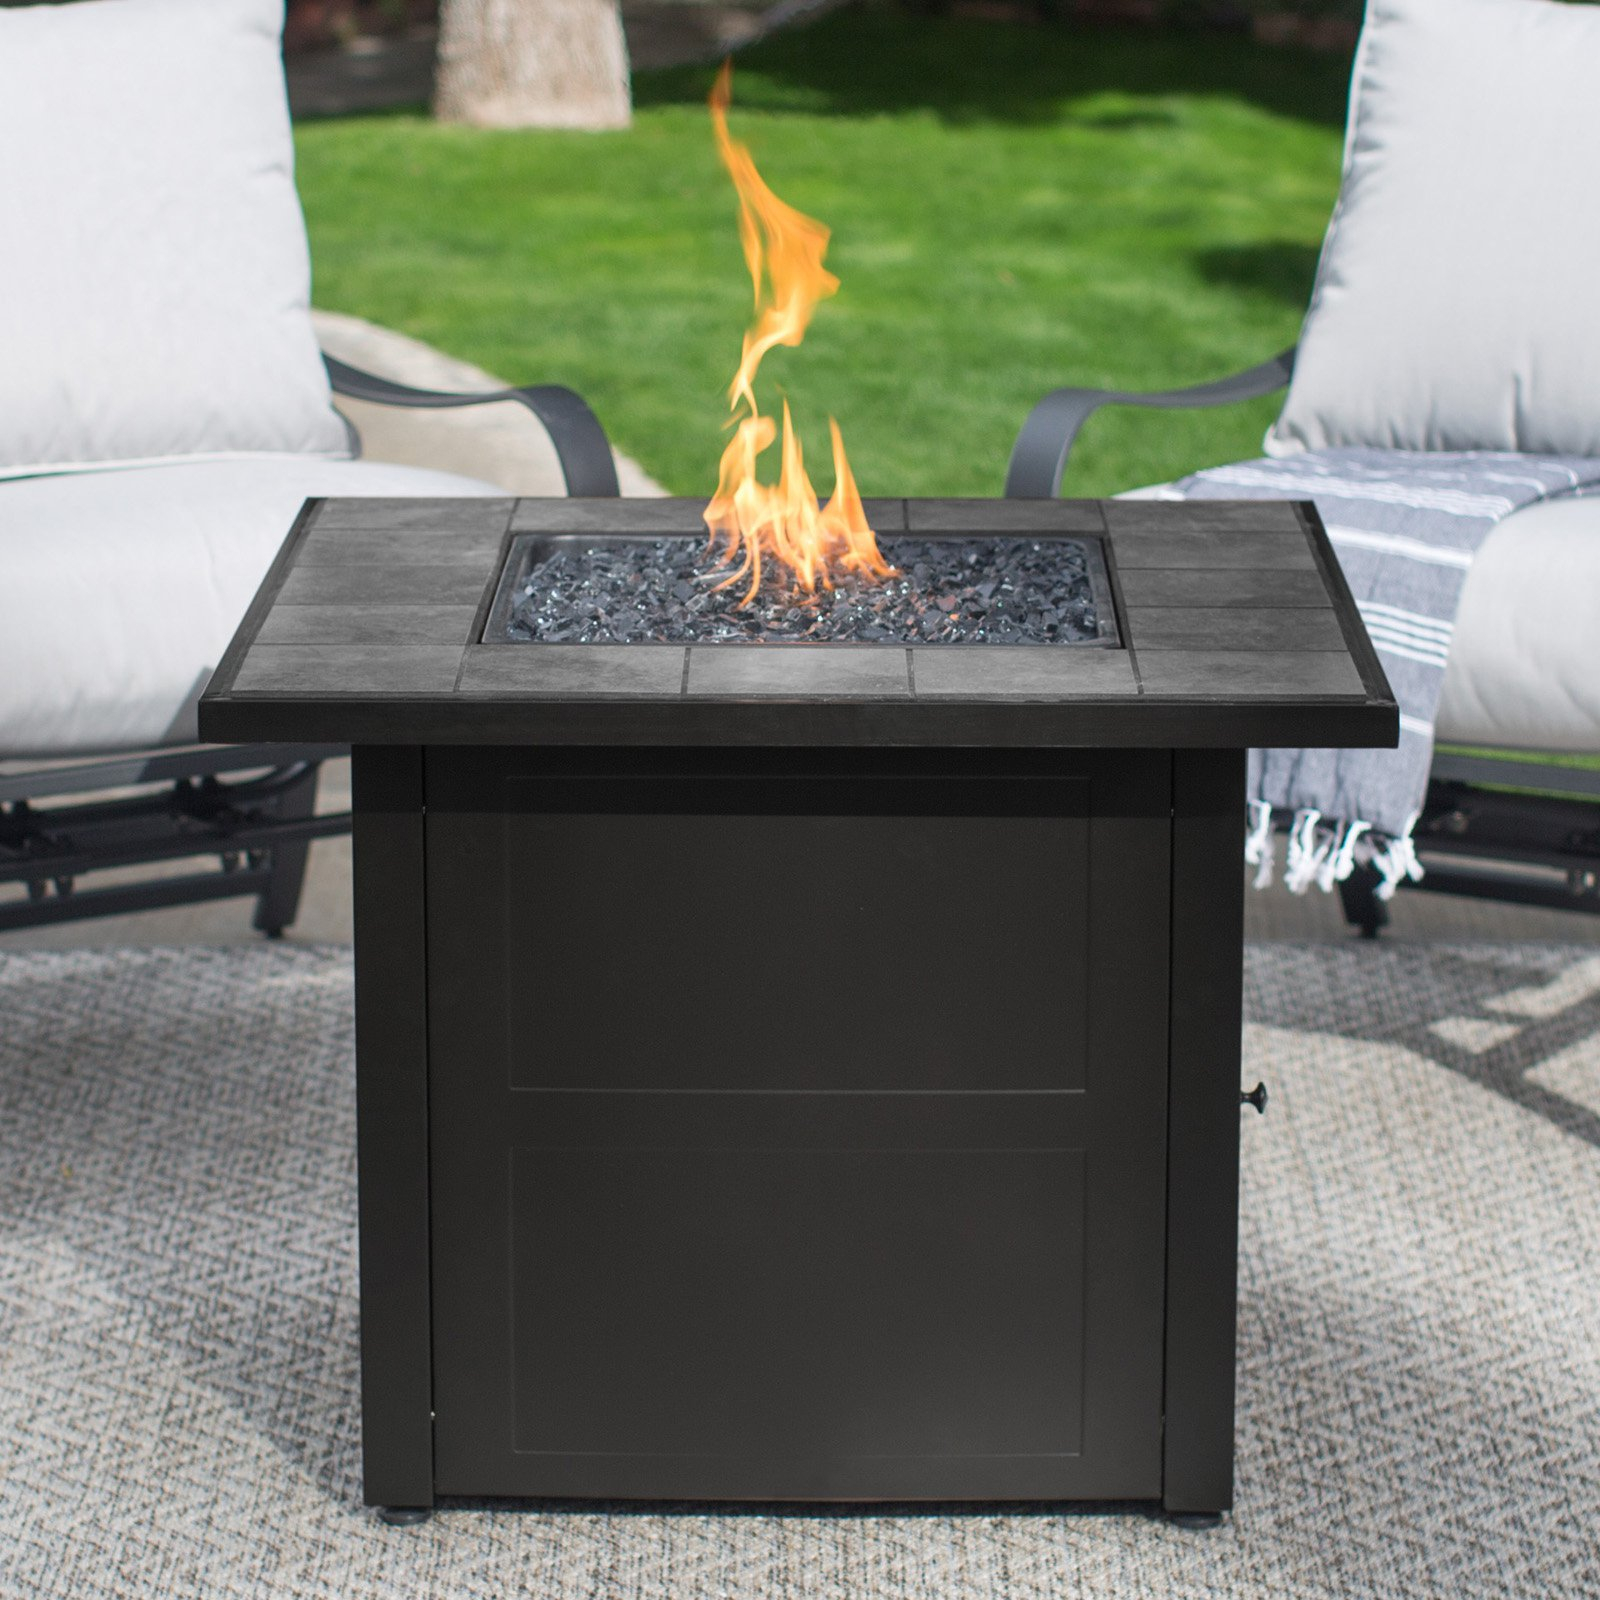 Endless Summer Lp Gas Outdoor Fire Pit Slate Tile Mantel Walmart in sizing 1600 X 1600